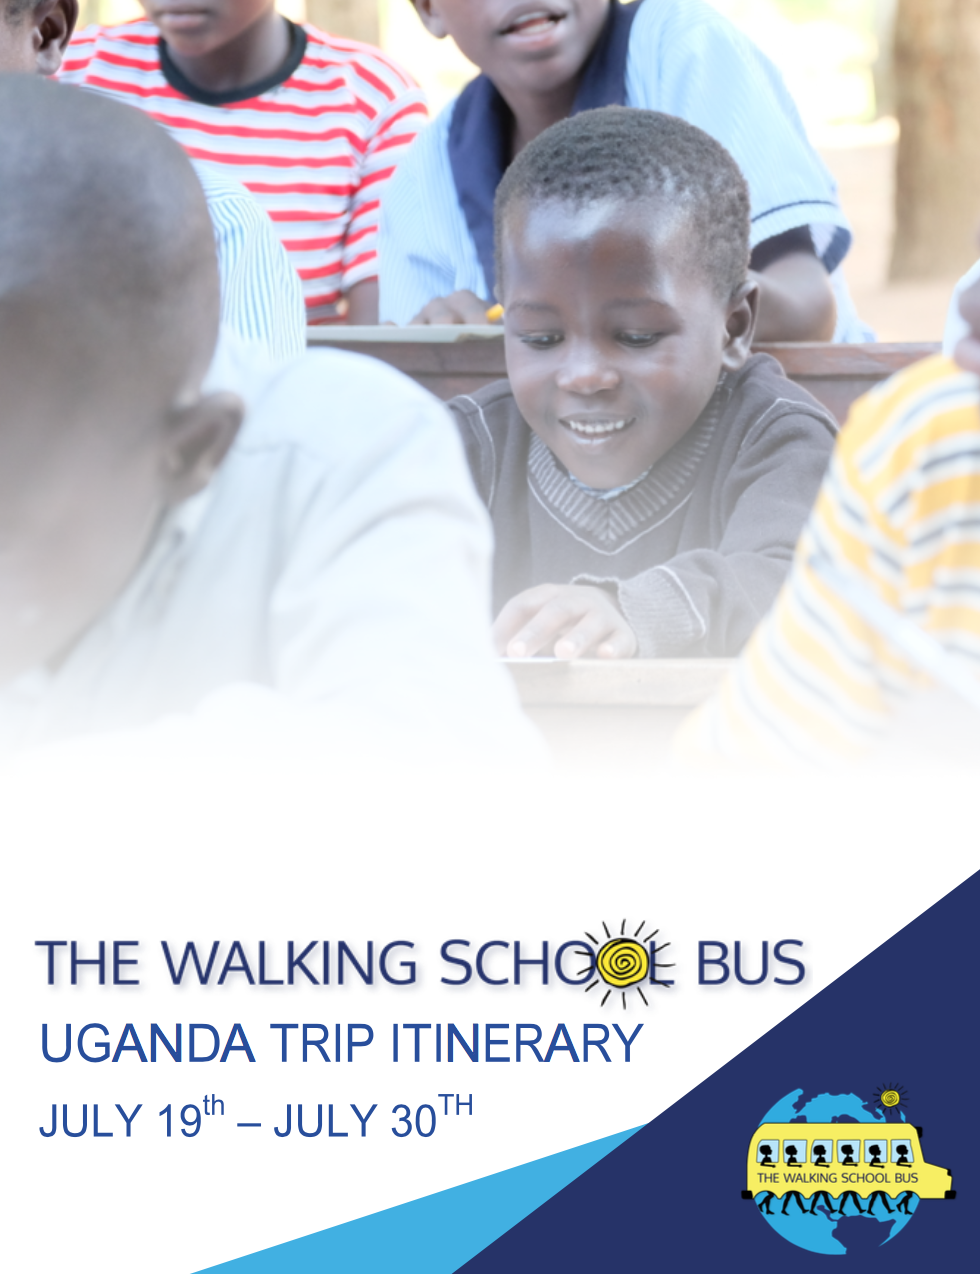 The Walking School Bus Uganda Expedition